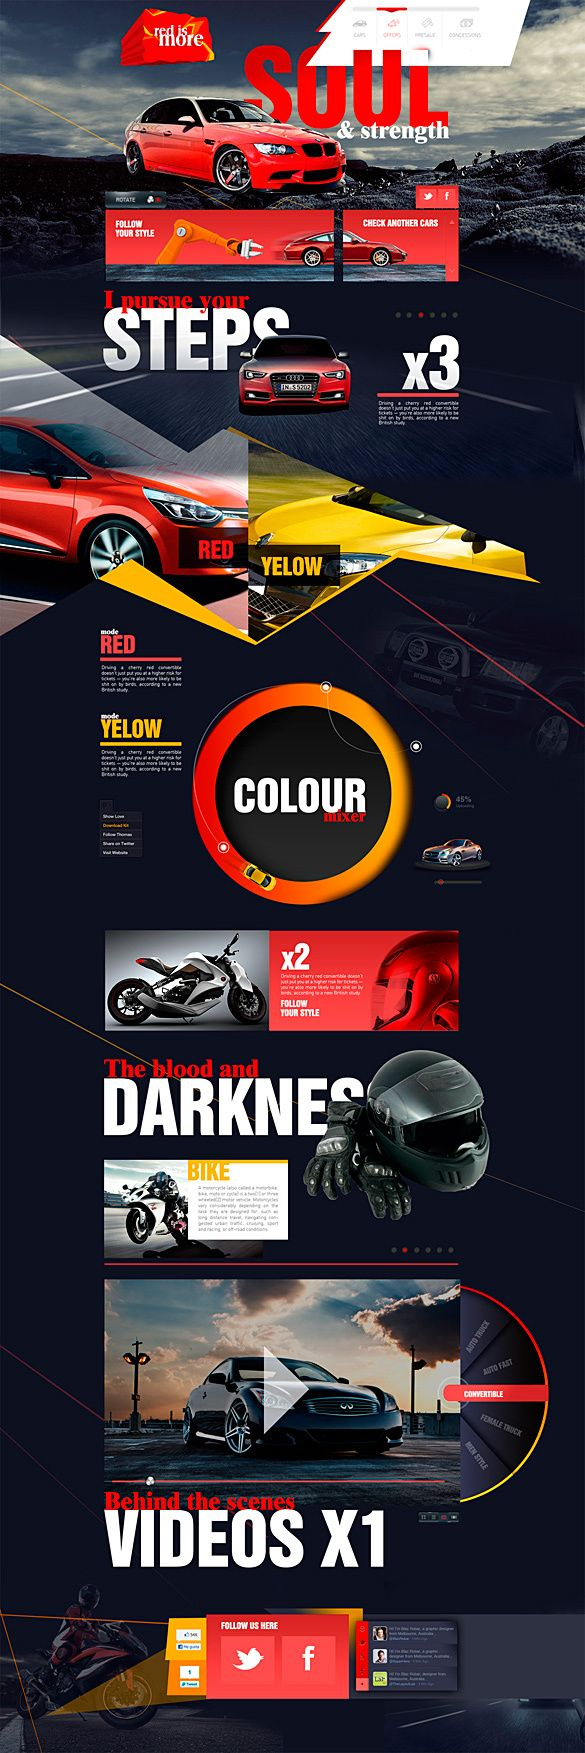 Cool Automotive Web Design on the Internet. Red is More - Color Projects. #automotive #webdesign #webdevelopment #website